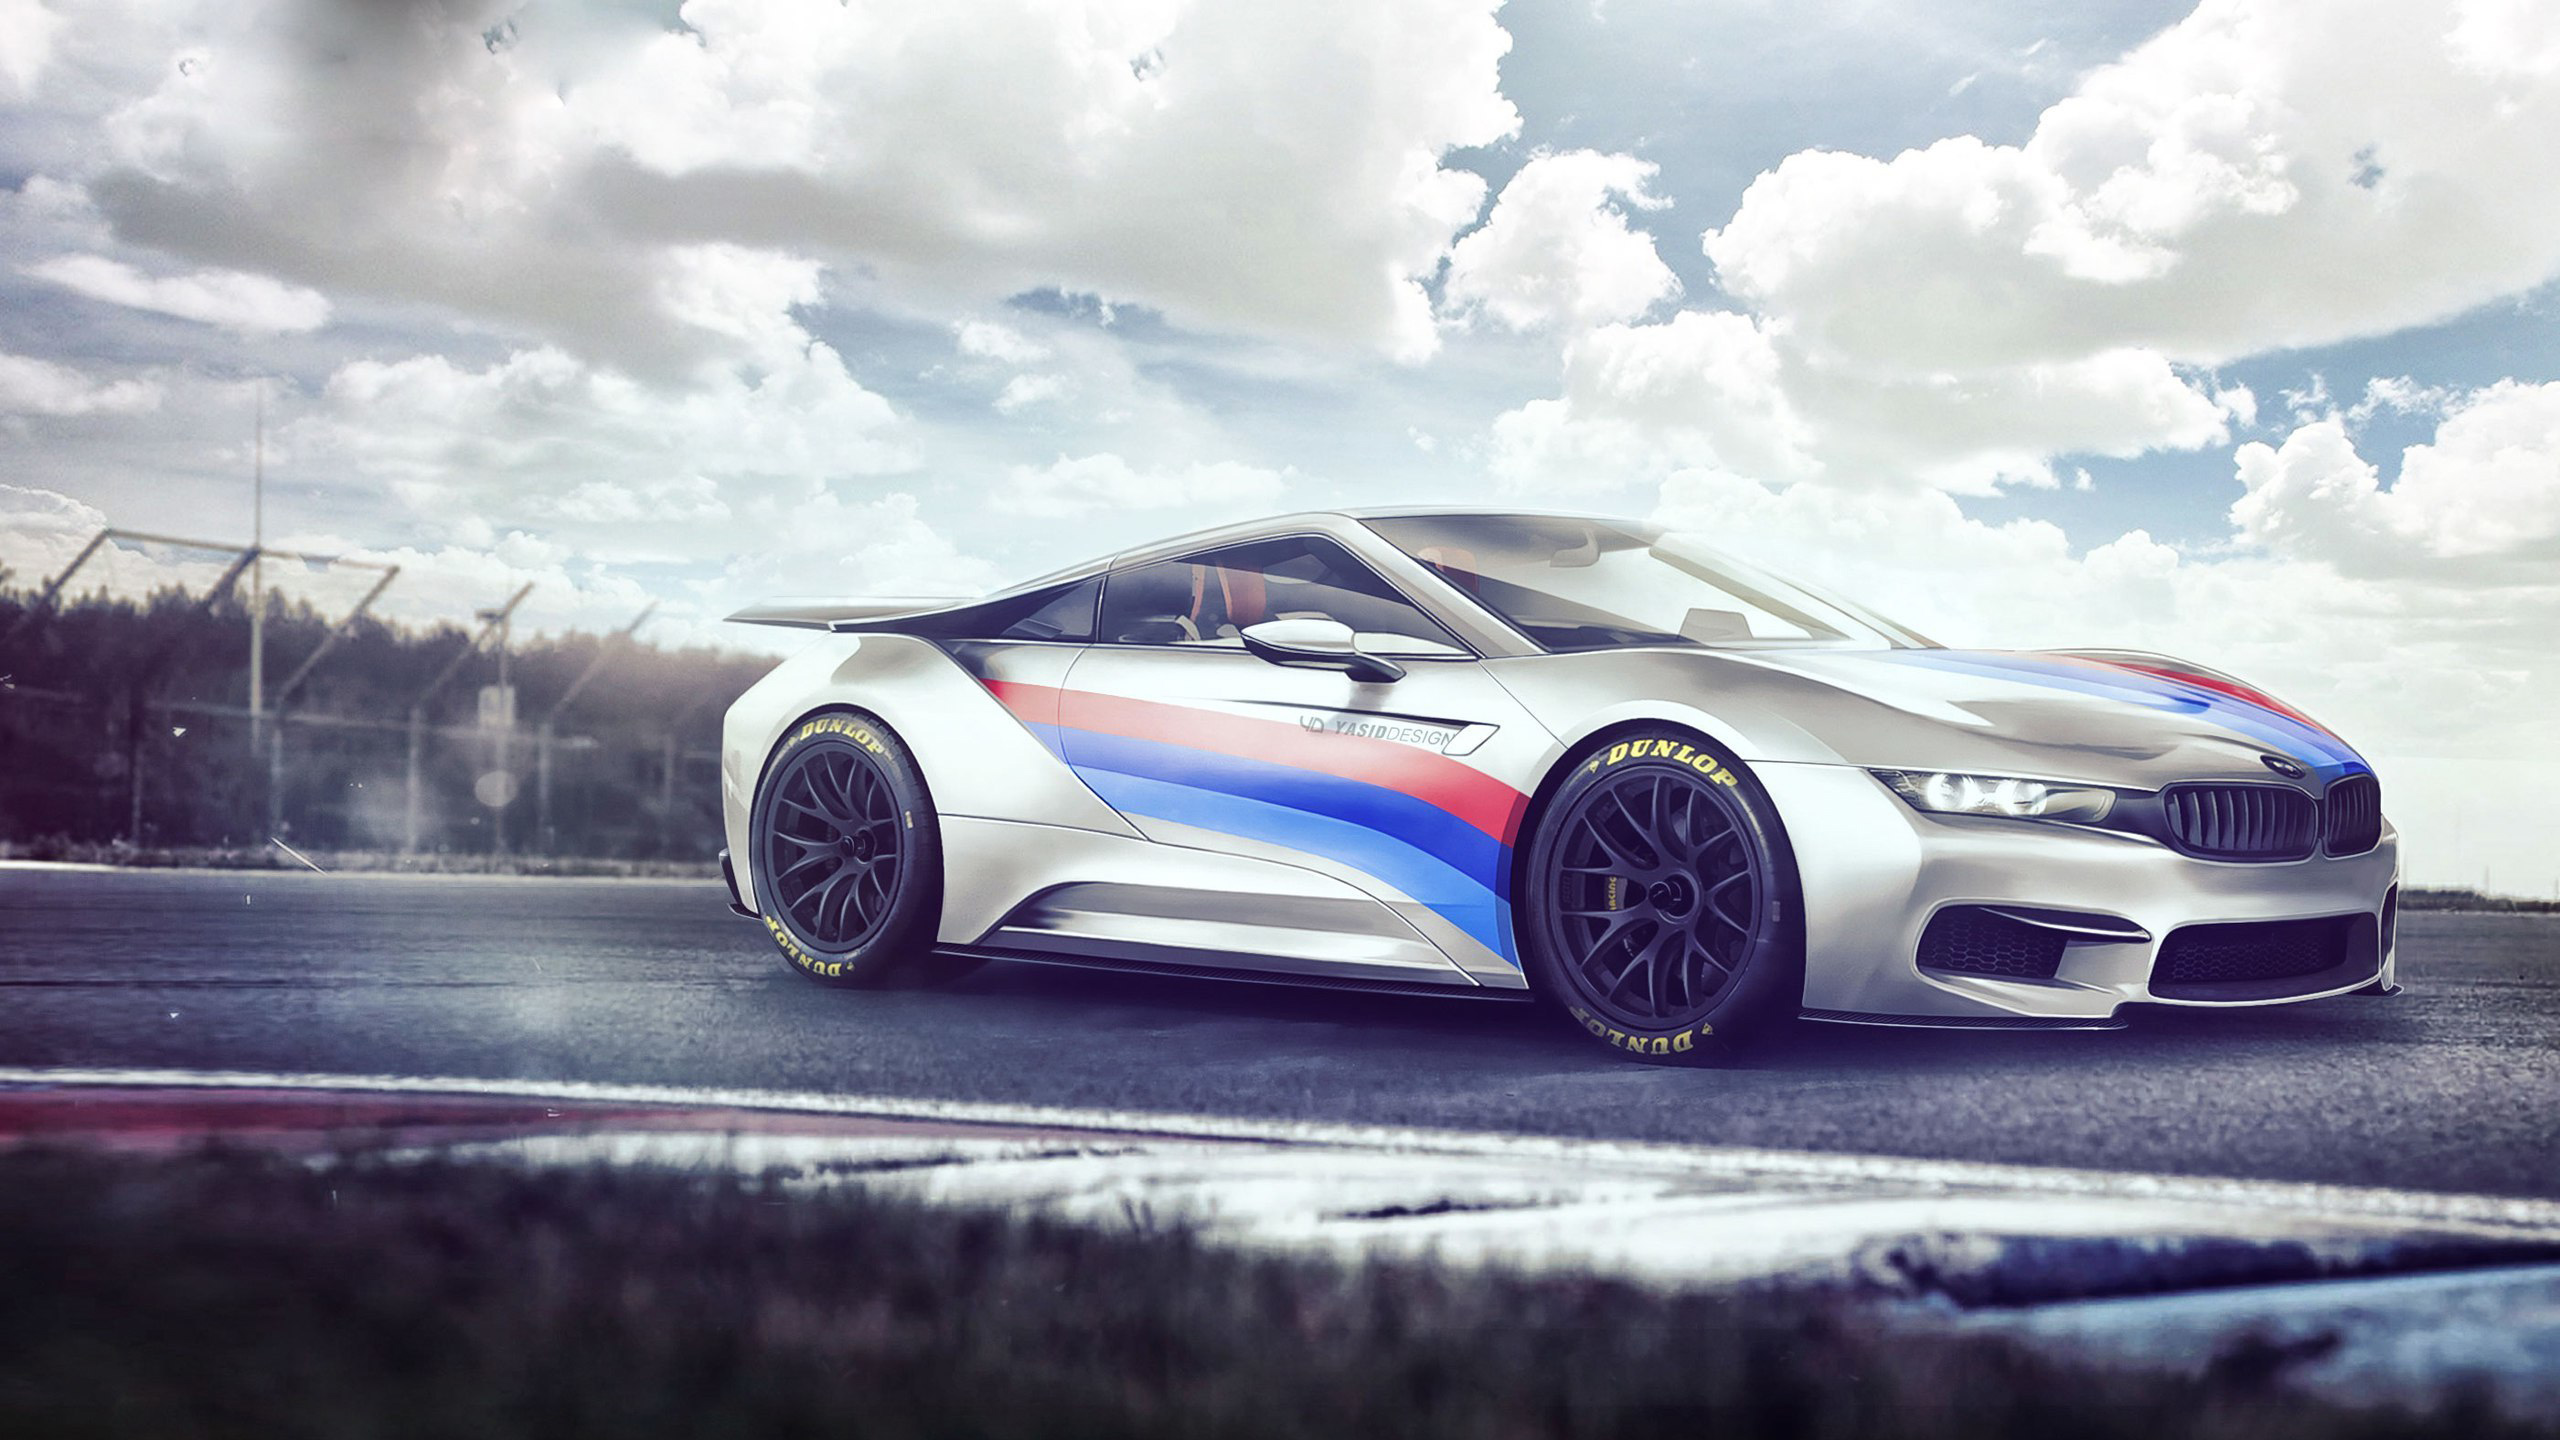 Bmw I8 Concept Electro Wallpaper Hd Car Wallpapers